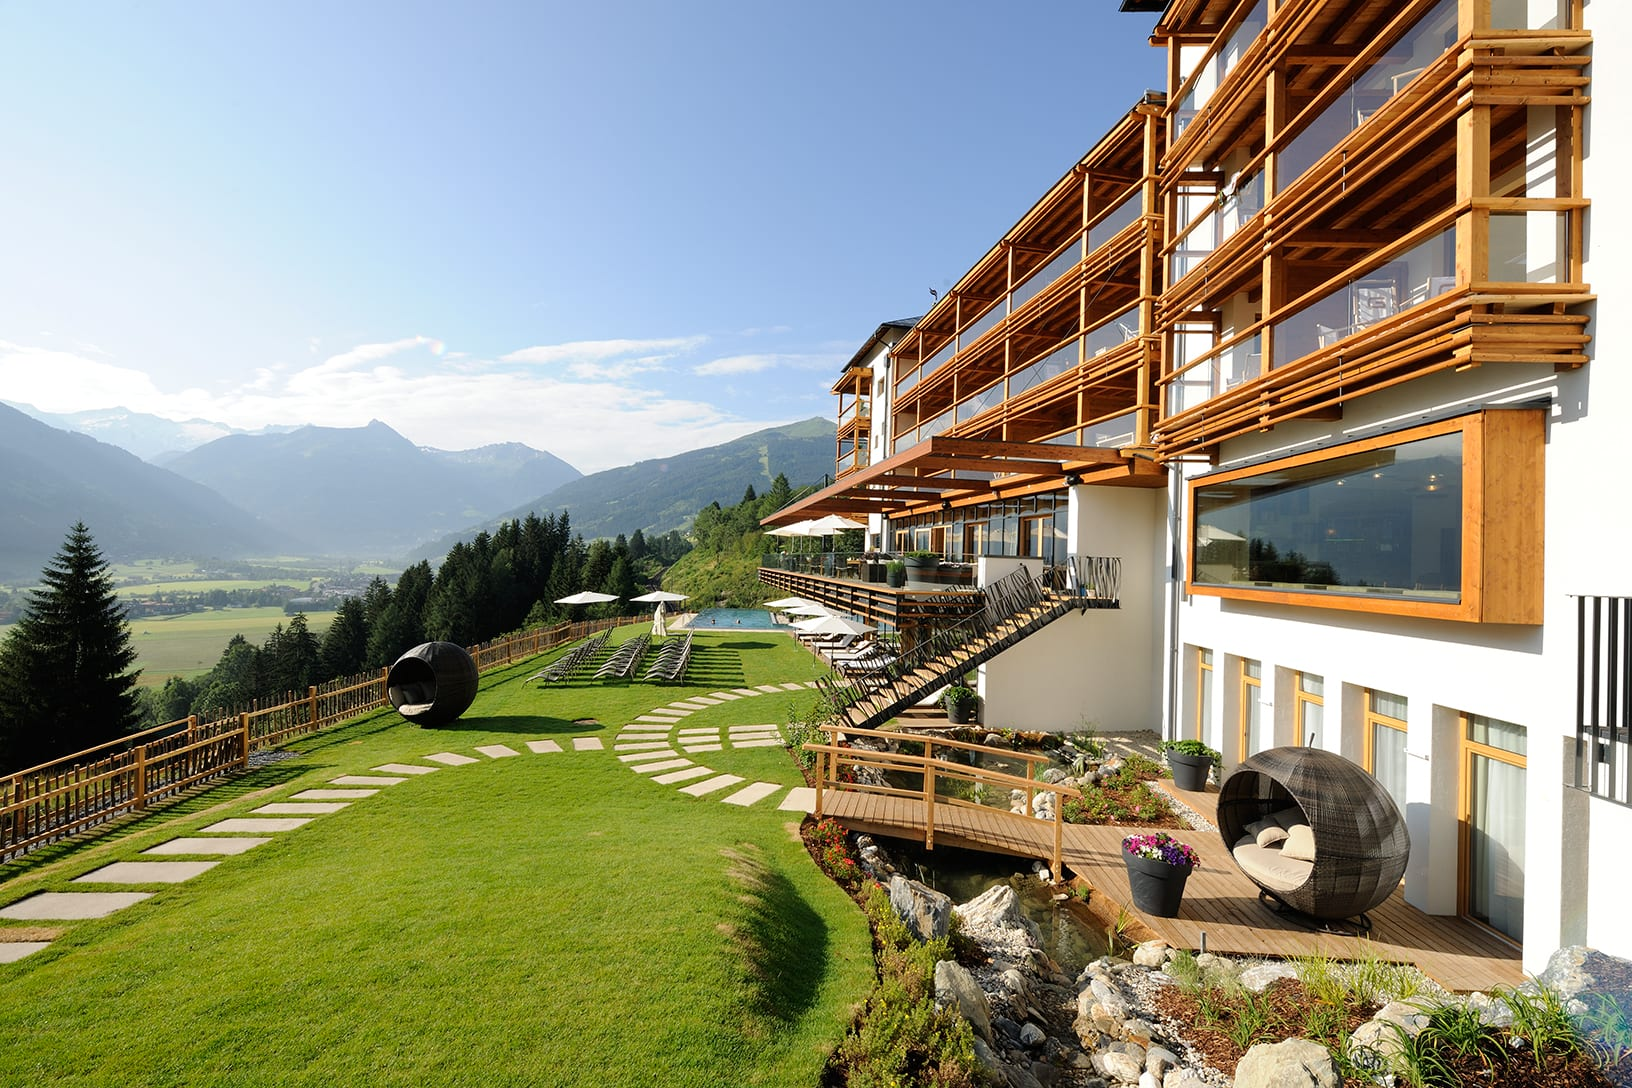 Hotel DAS.GOLDBERG Bad Hofgastein My Golf holiday ... 3 nights